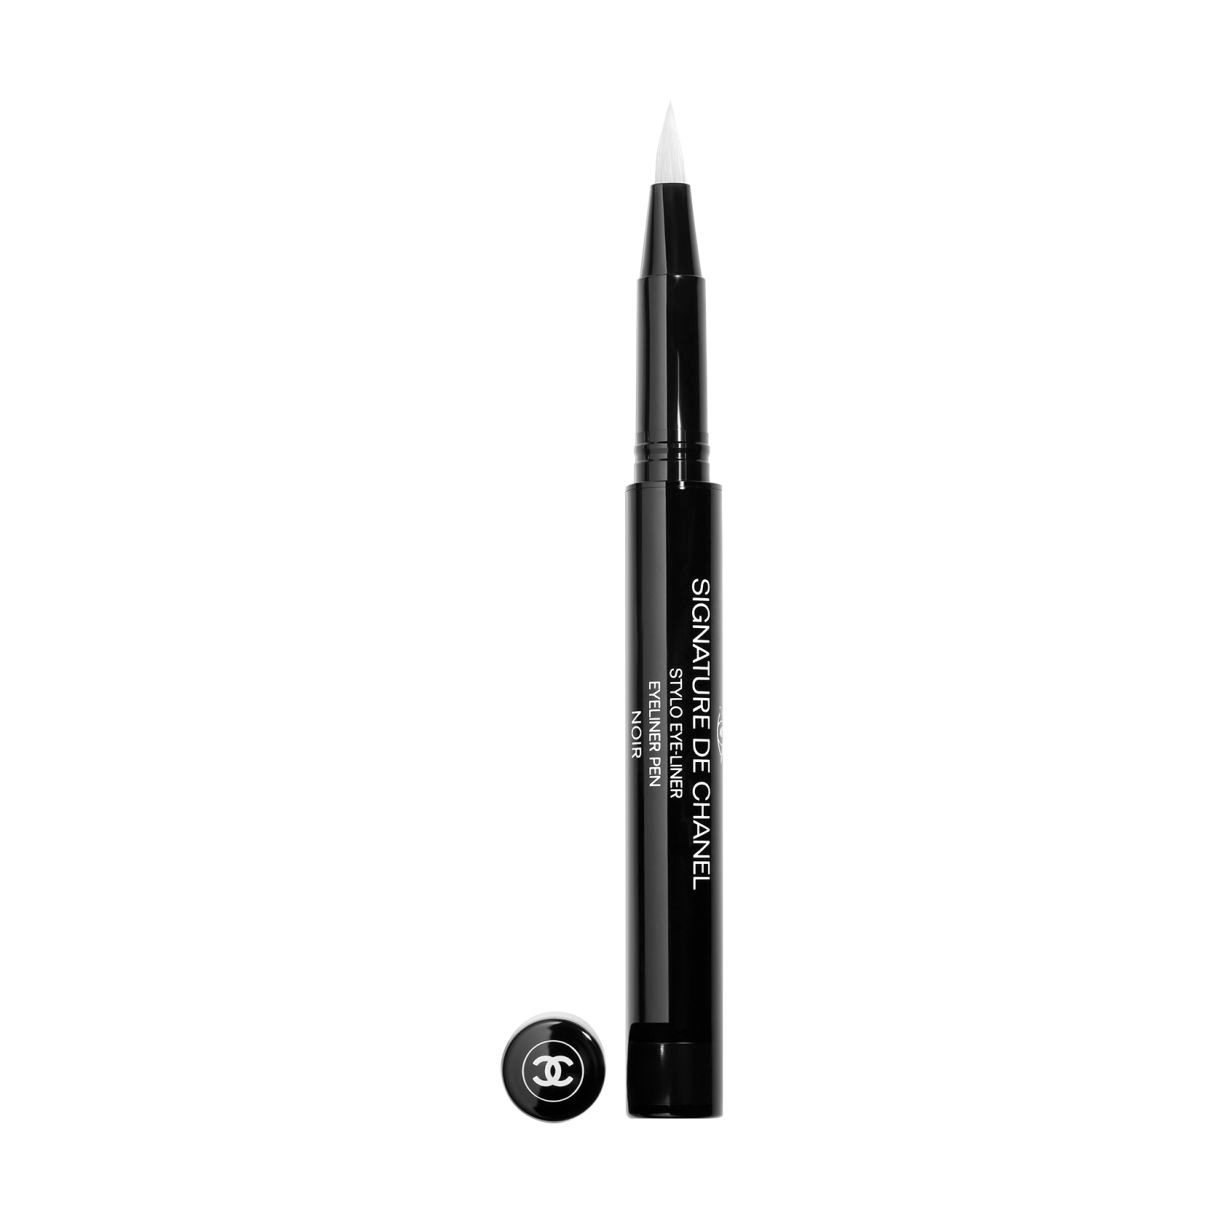 SIGNATURE DE CHANEL INTENSE LONGWEAR EYELINER PEN 10 NOIR 0.5ML